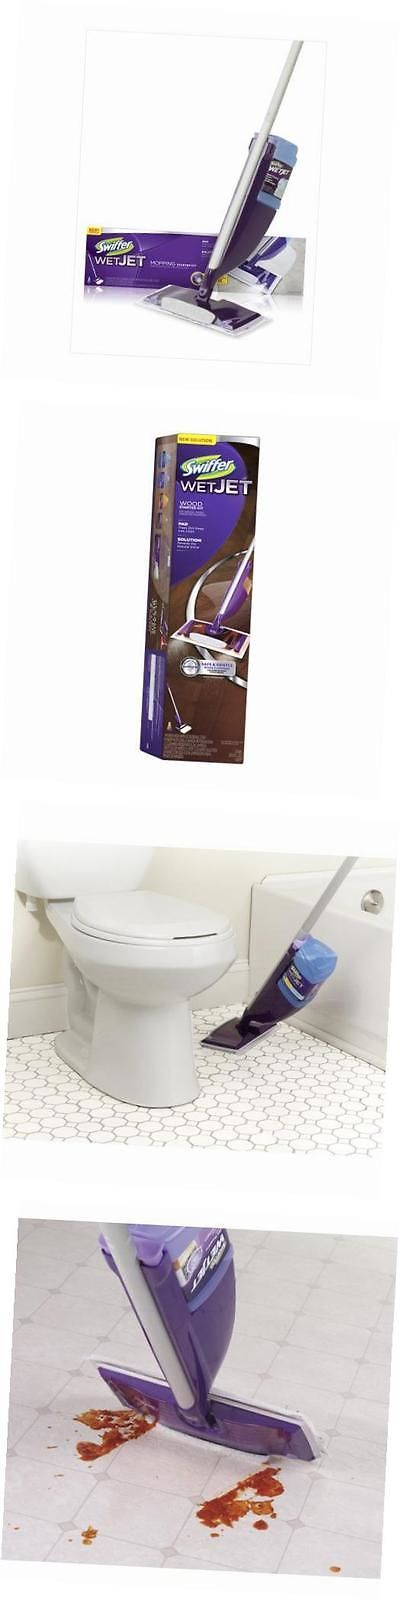 Mops and Brooms 20607: Wetjet Wood Starter Kit -> BUY IT NOW ONLY: $30.57 on eBay!